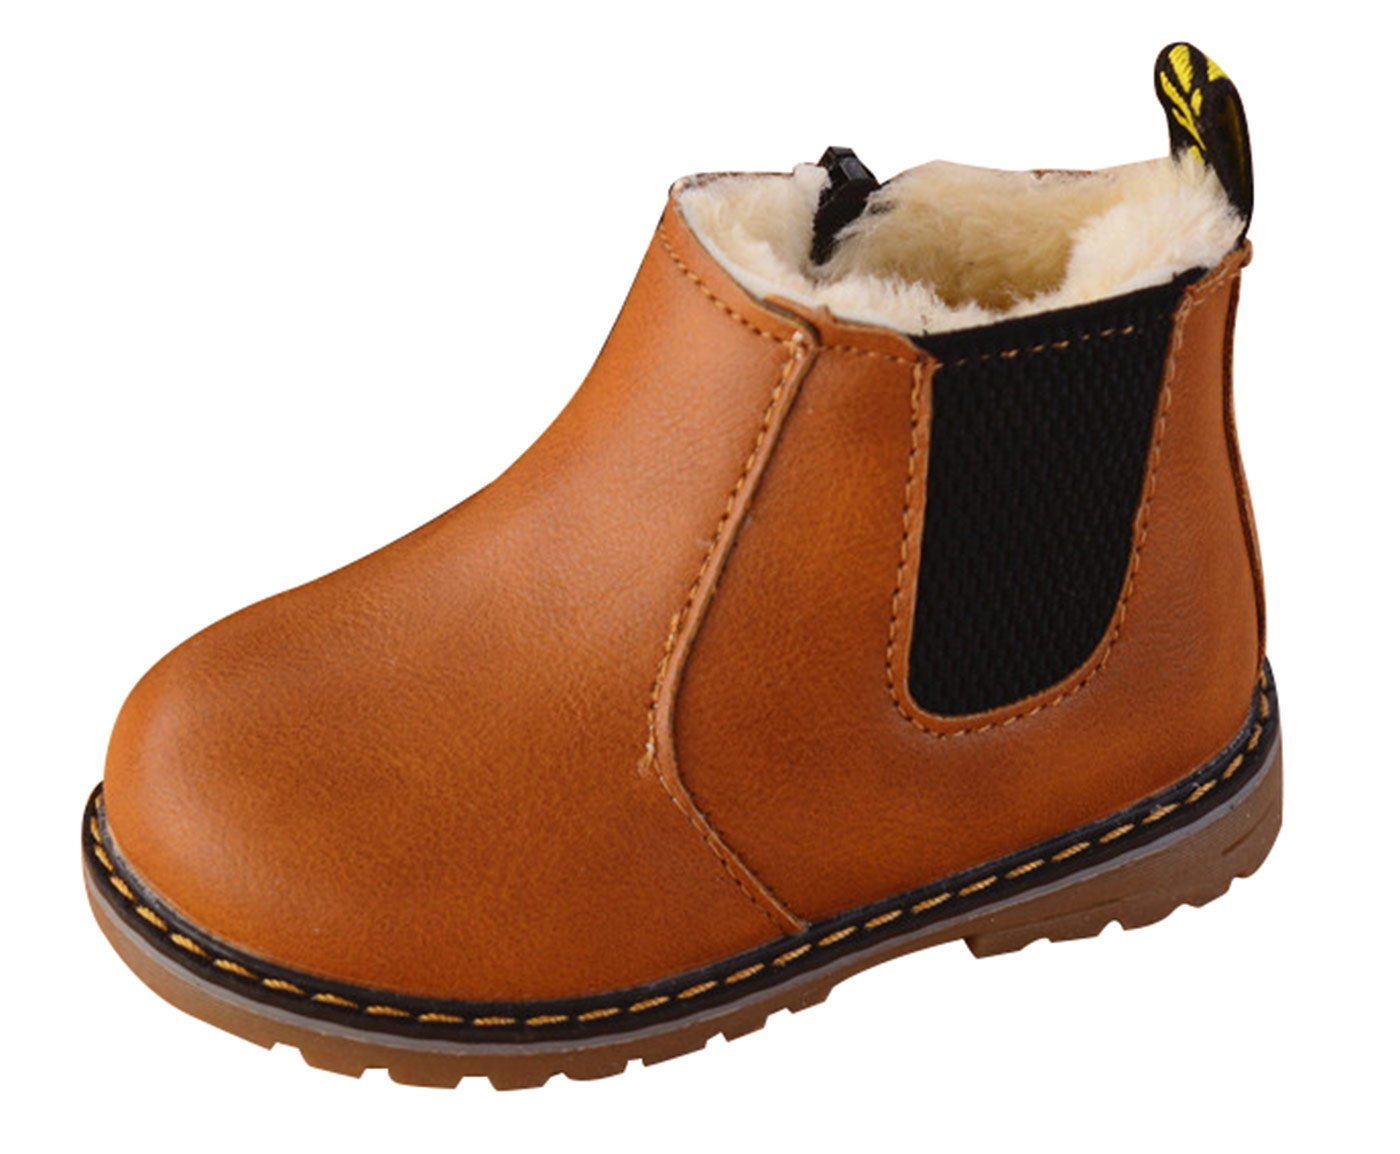 Autumn Winter Comfort Boots Martin Boots Lace up High Top Ankle Shoes for Baby Boys Girls Brown Size 6 M NINGQIUPI